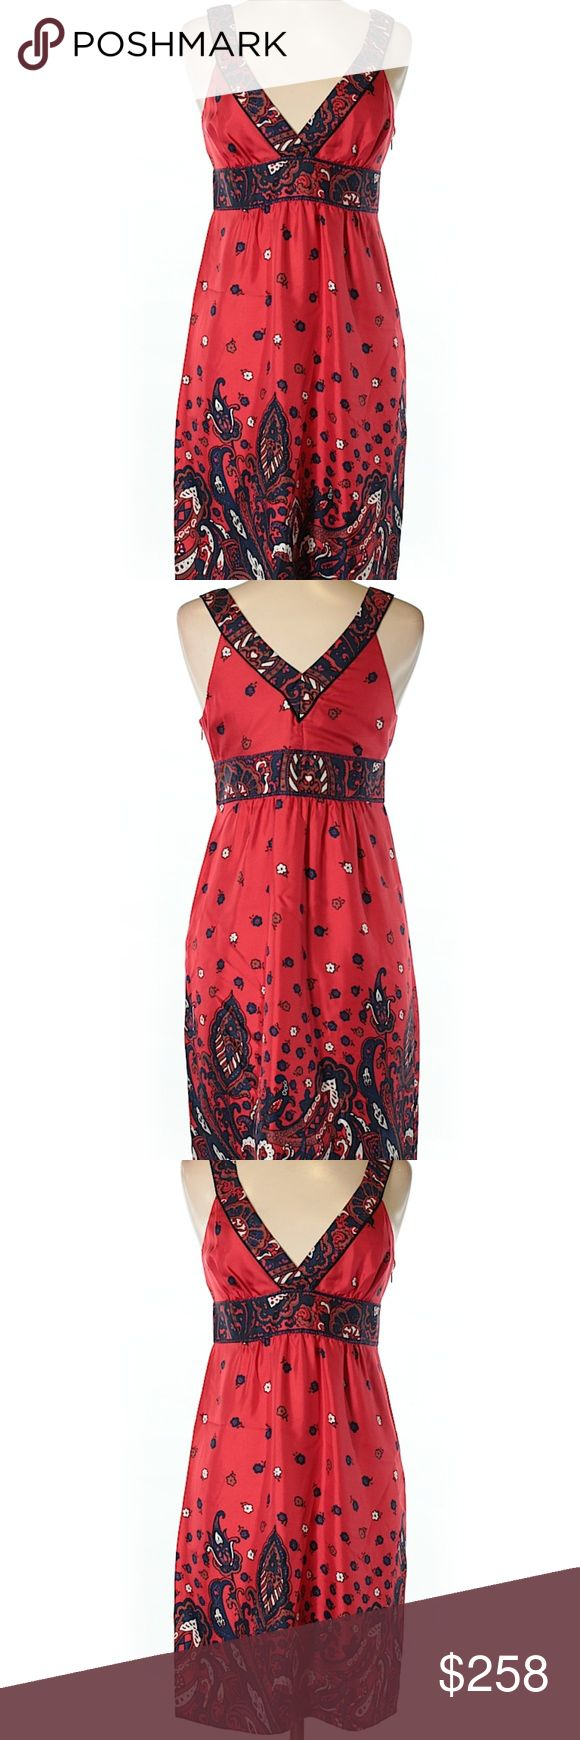 """Tibi Casual Dress Size 6 A-Line silhouette, Short, V-Neckline, Red, Solid, 30"""" Chest, 28"""" Length, 100% Silk, in excellent condition. Tibi Dresses"""